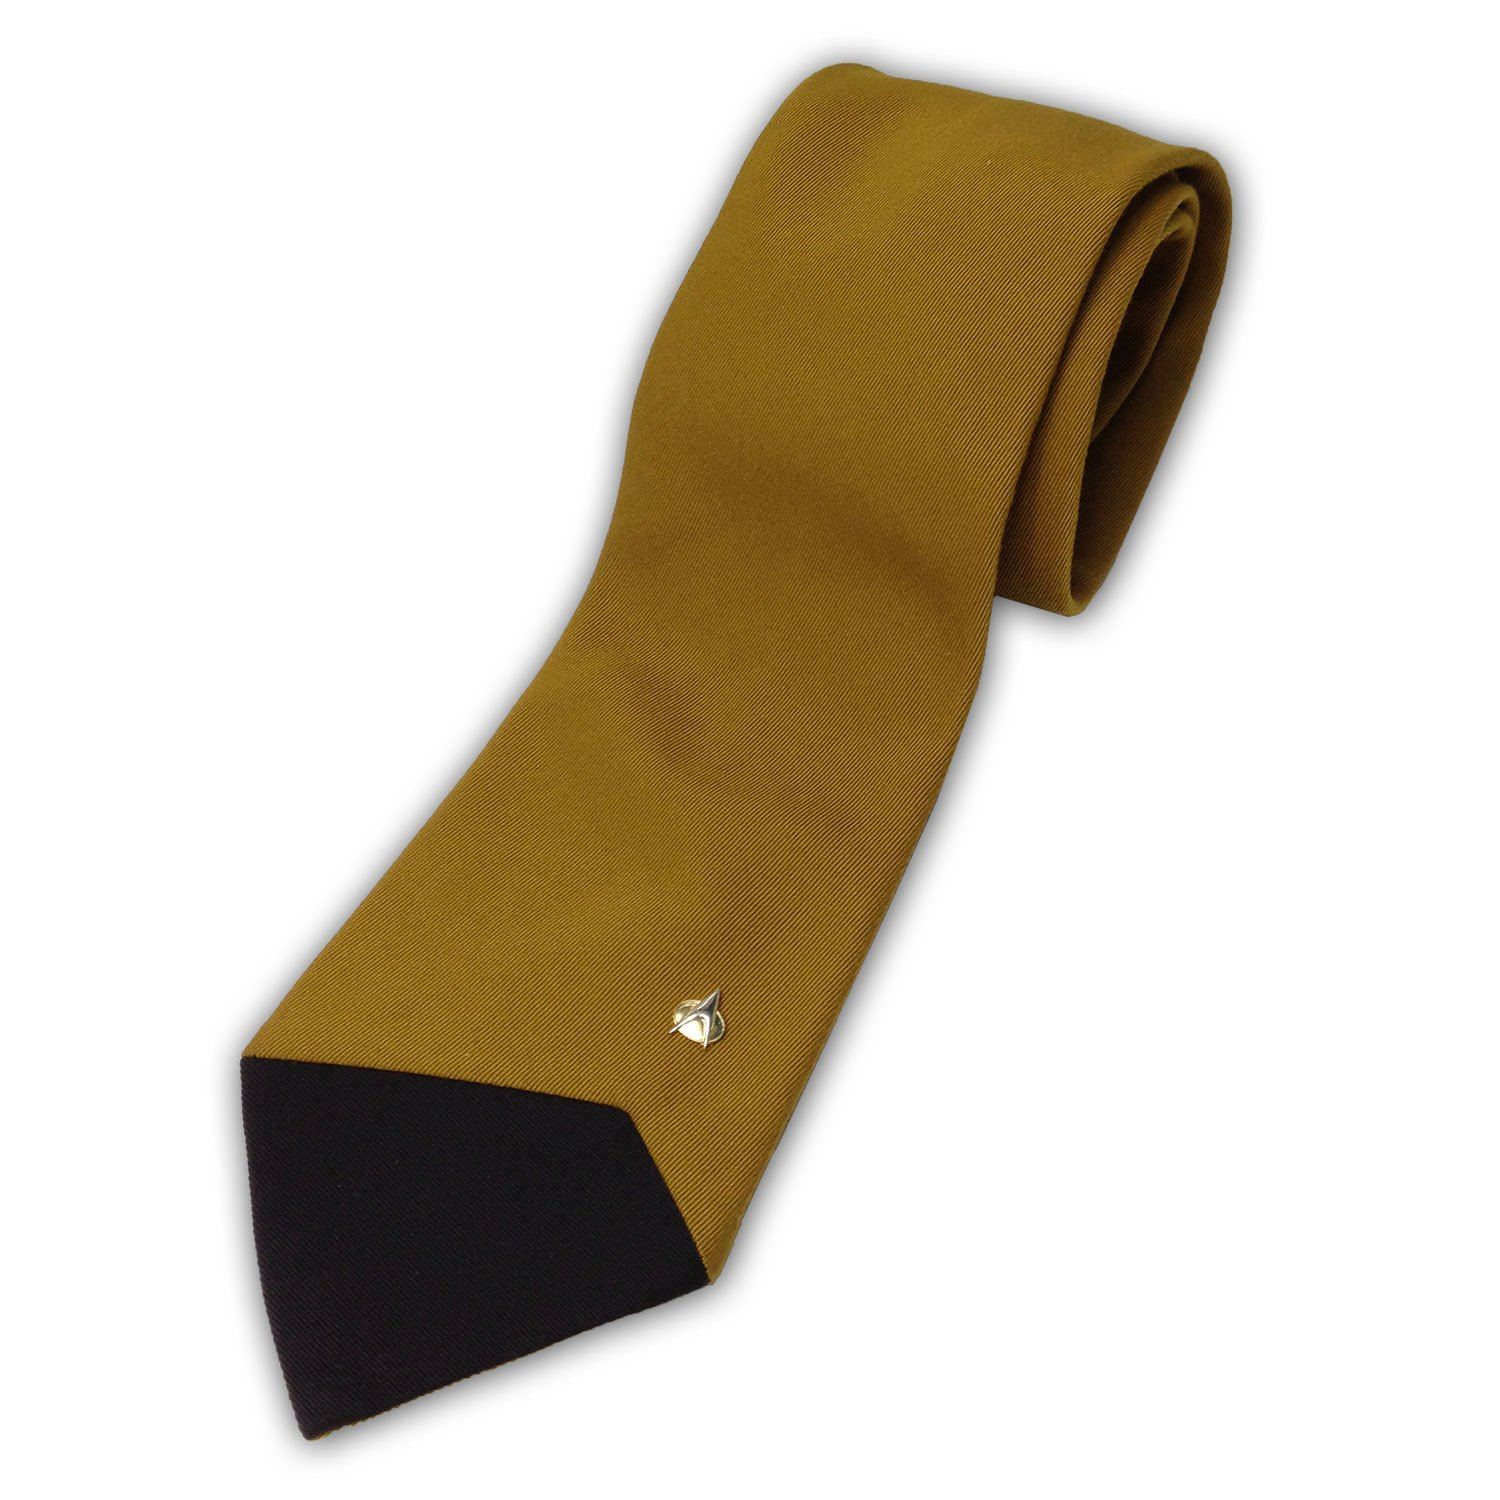 STAR TREK™: THE NEXT GENERATION - Novelty Men's Necktie